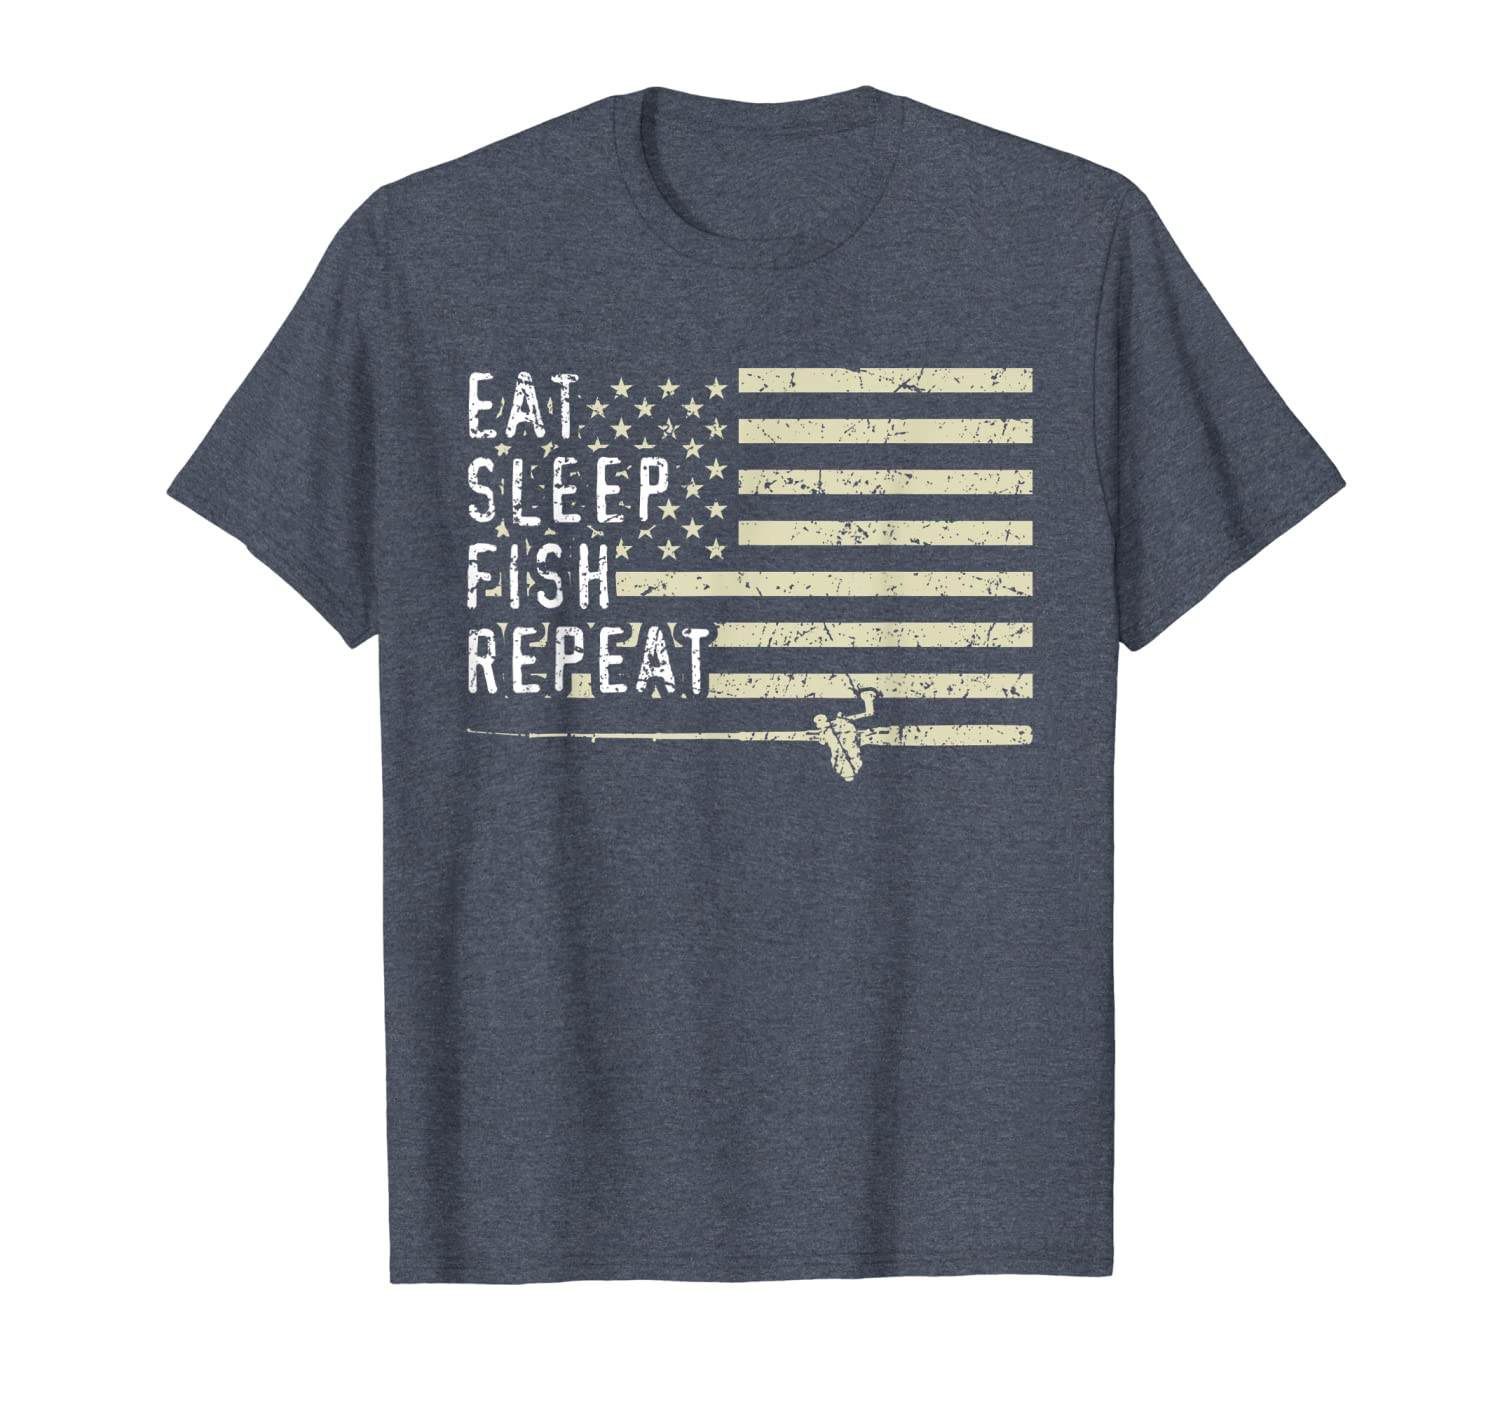 Eat Sleep Fish Repeat Funny Bass Fishing Fathers Day Gifts T-Shirt Unisex Tshirt